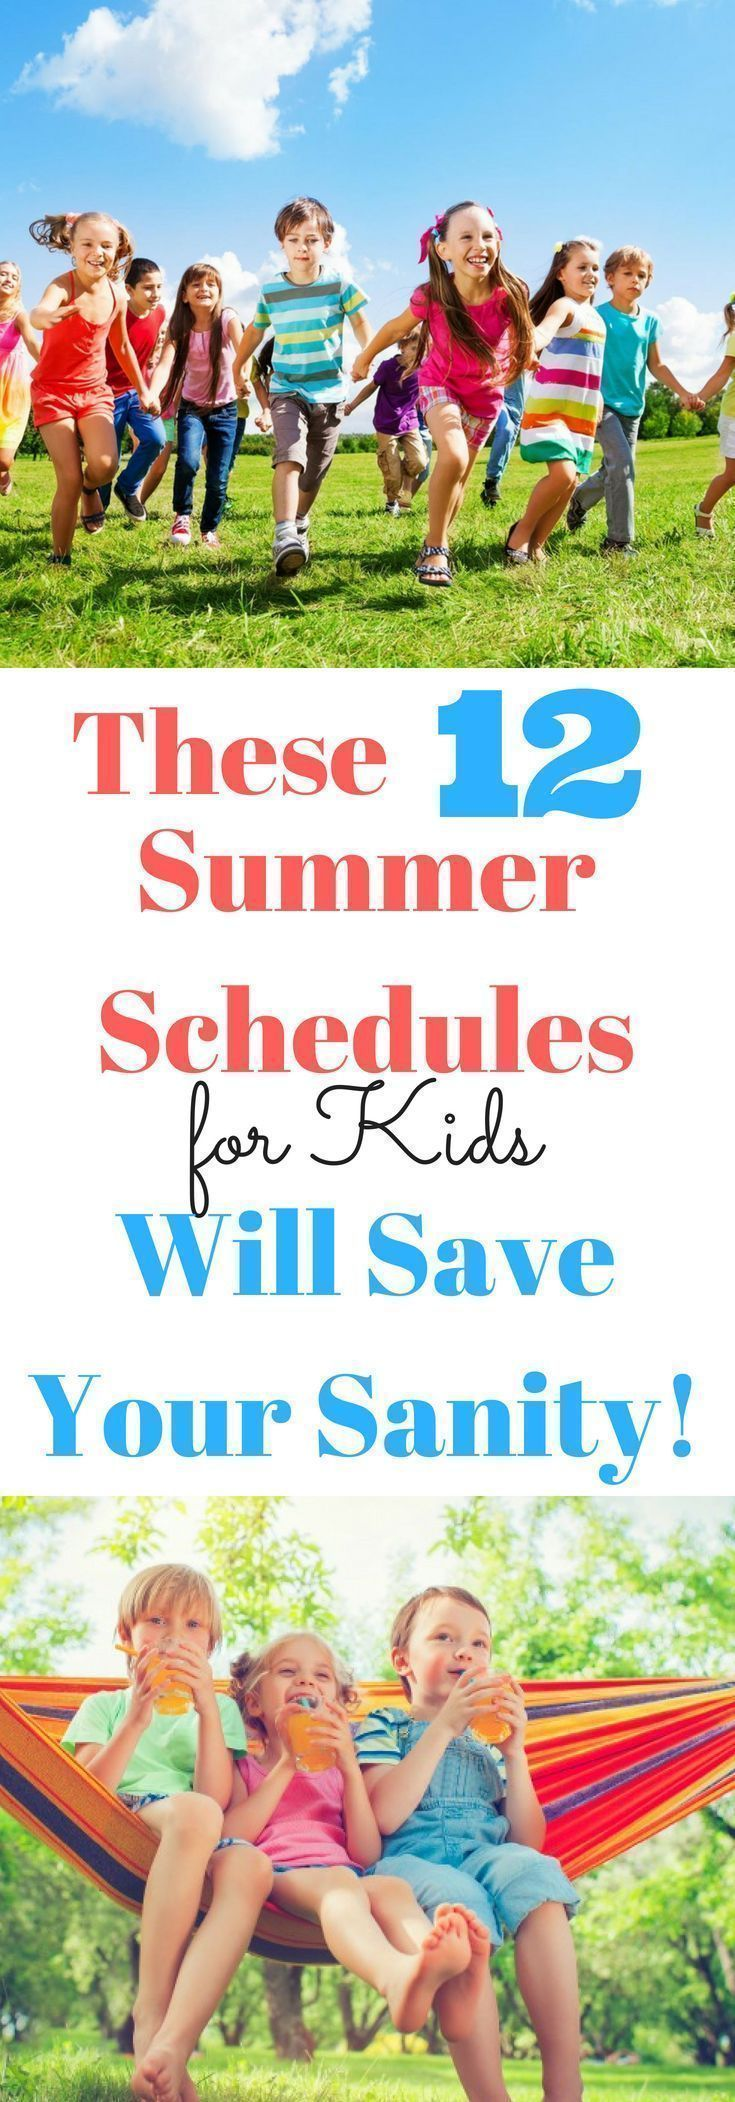 The Best Summer Schedules for Kids #summerschedule These free, printable summer schedules for kids are perfect to keep kids happy! #summerfun #schedule #momlife #summerschedule The Best Summer Schedules for Kids #summerschedule These free, printable summer schedules for kids are perfect to keep kids happy! #summerfun #schedule #momlife #summerschedule The Best Summer Schedules for Kids #summerschedule These free, printable summer schedules for kids are perfect to keep kids happy! #summerfun #sch #summerschedule